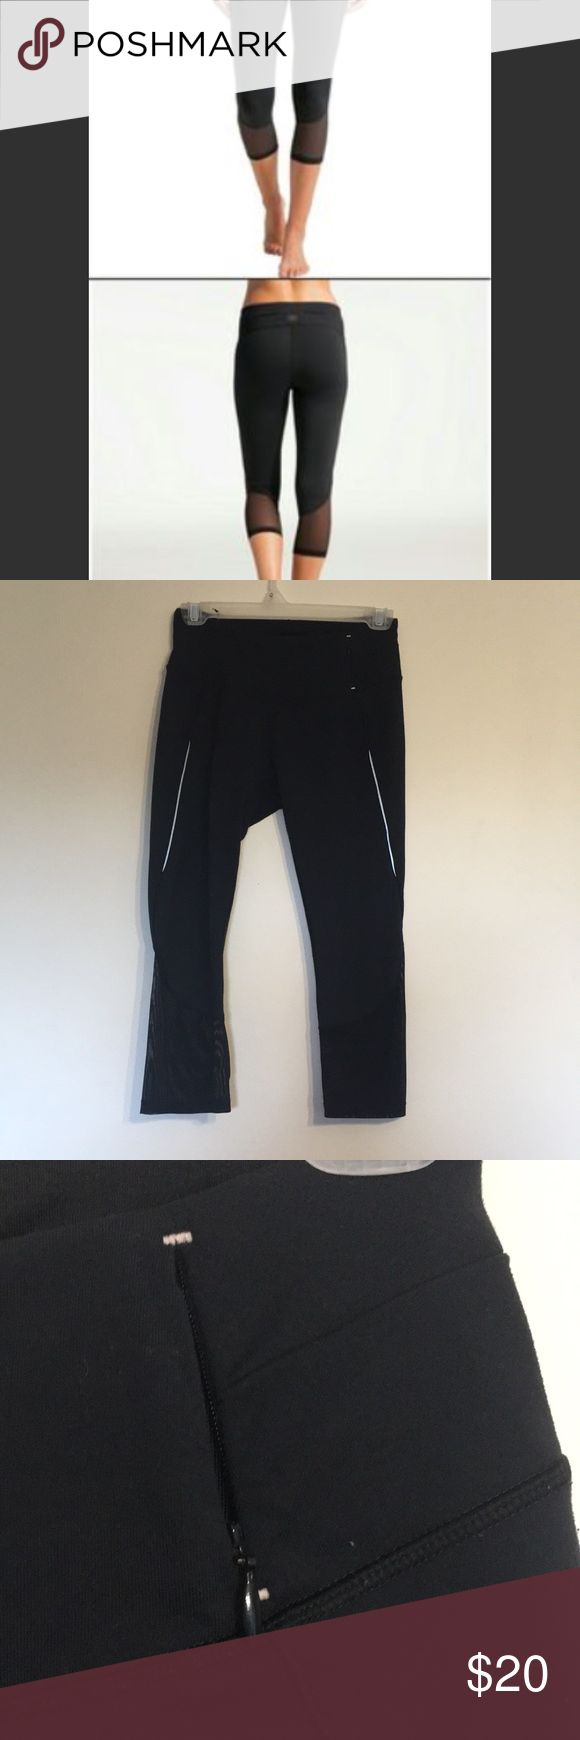 Calls by Carrie underwood Capri leggings size S Calls by Carrie underwood Capri leggings size S, mesh at the bottom of the legs, small zipper pocket on the waist band. Small hole on the knee and some pilling in the crotch area (smoke free, pet friendly home) CALIA by Carrie Underwood Pants Leggings